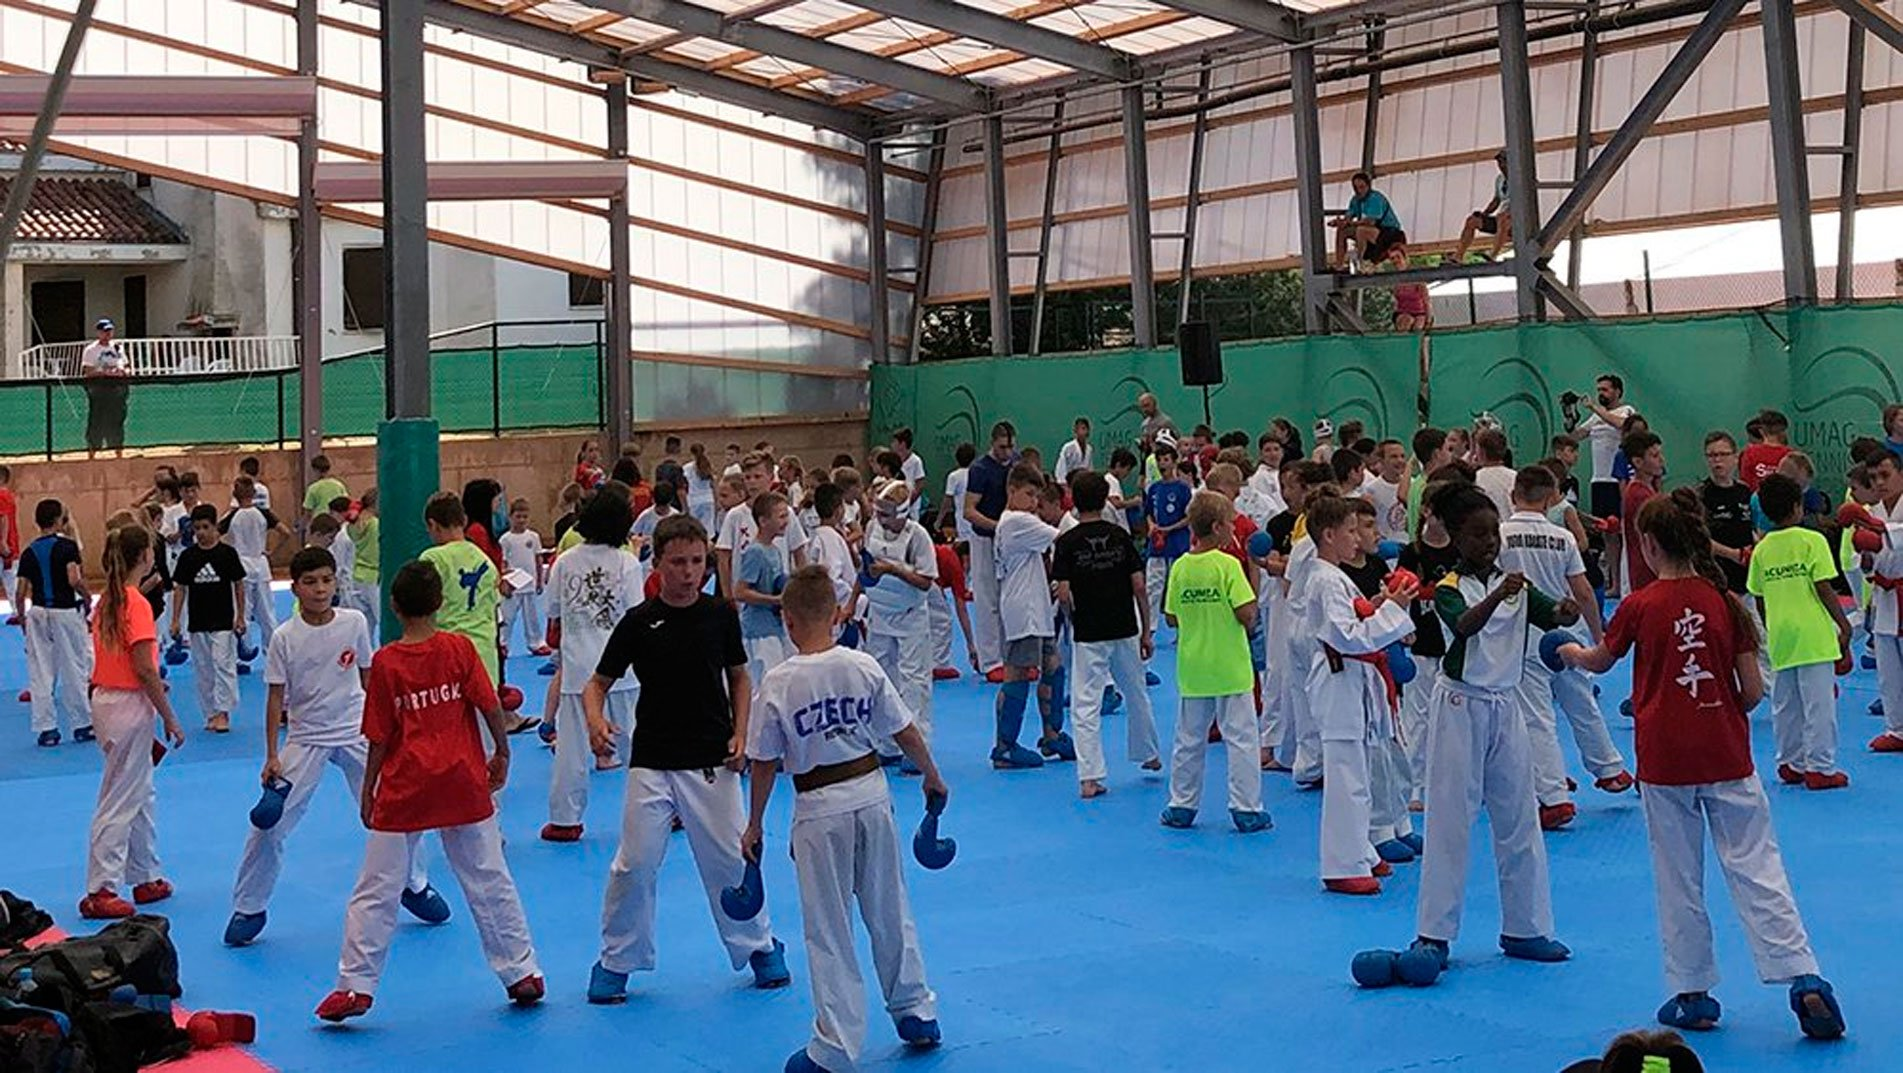 Anti-doping seminar staged at WKF Youth Camp & Cup in Umag